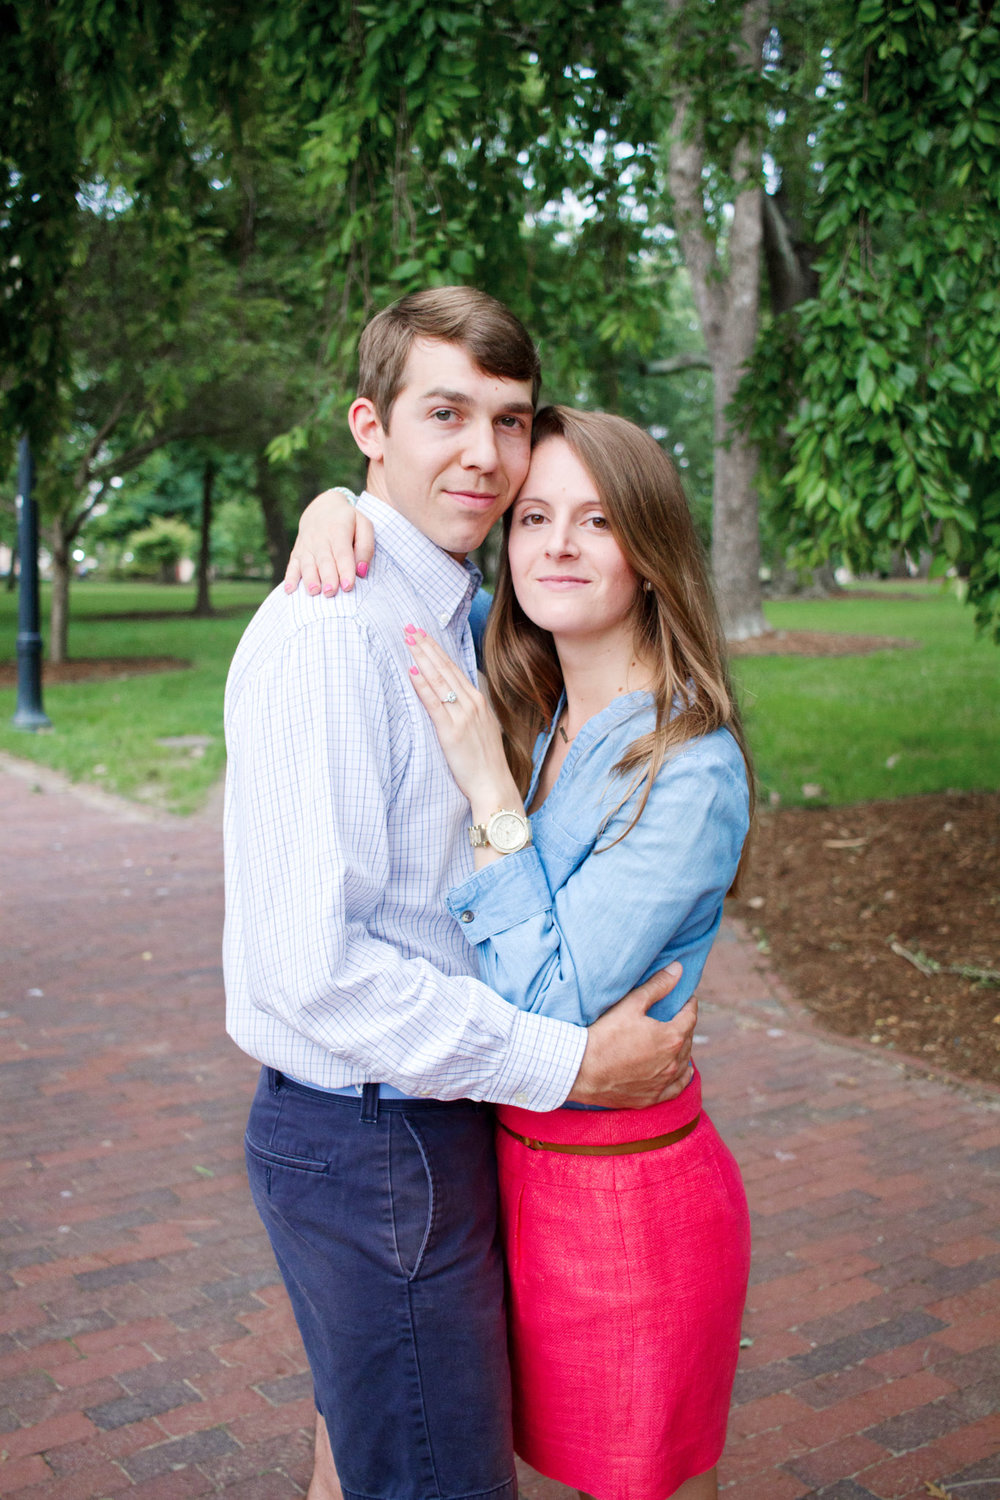 Dating at unc chapel hill